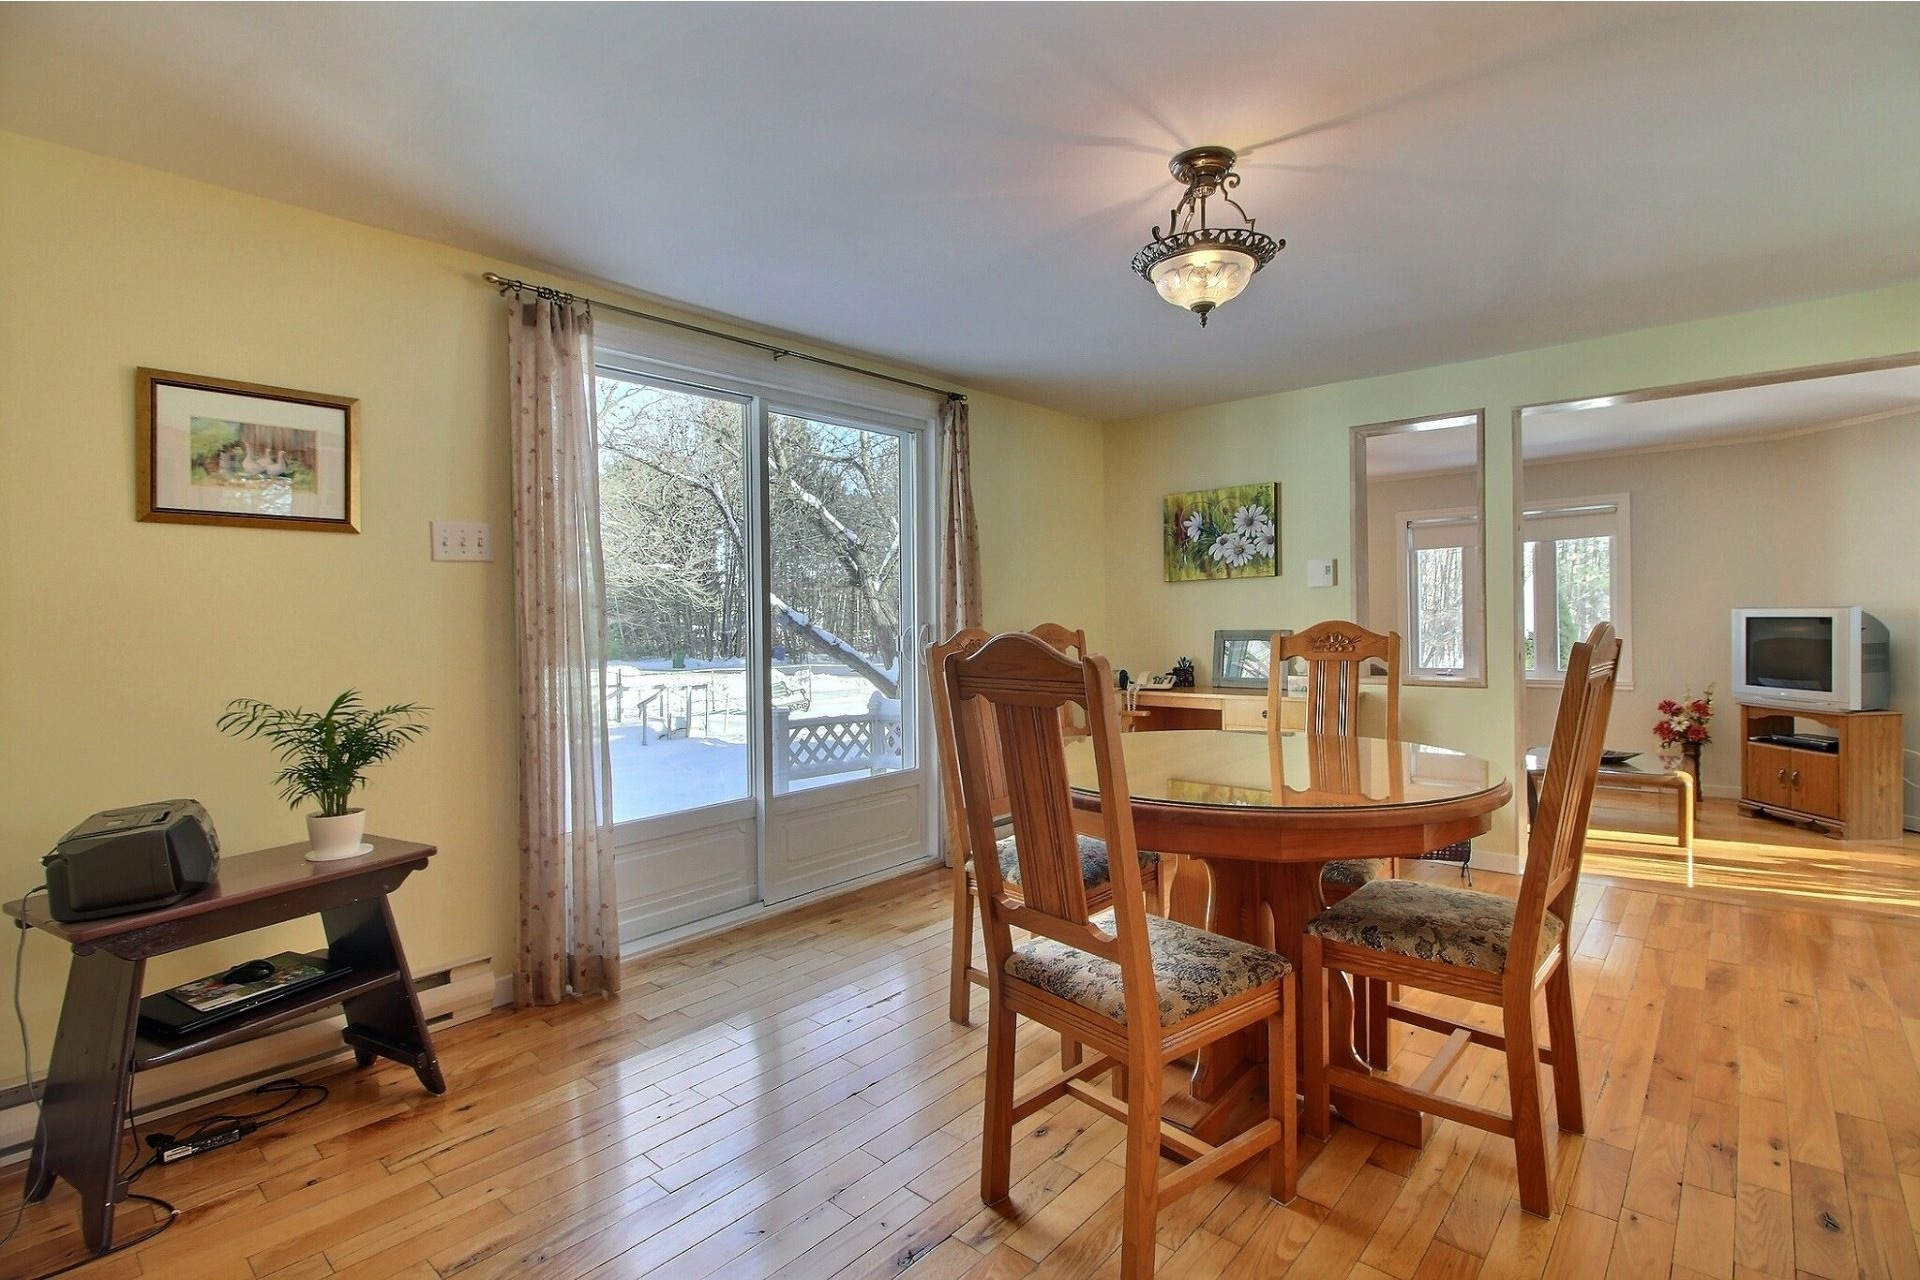 image 9 - House For sale Rawdon - 8 rooms